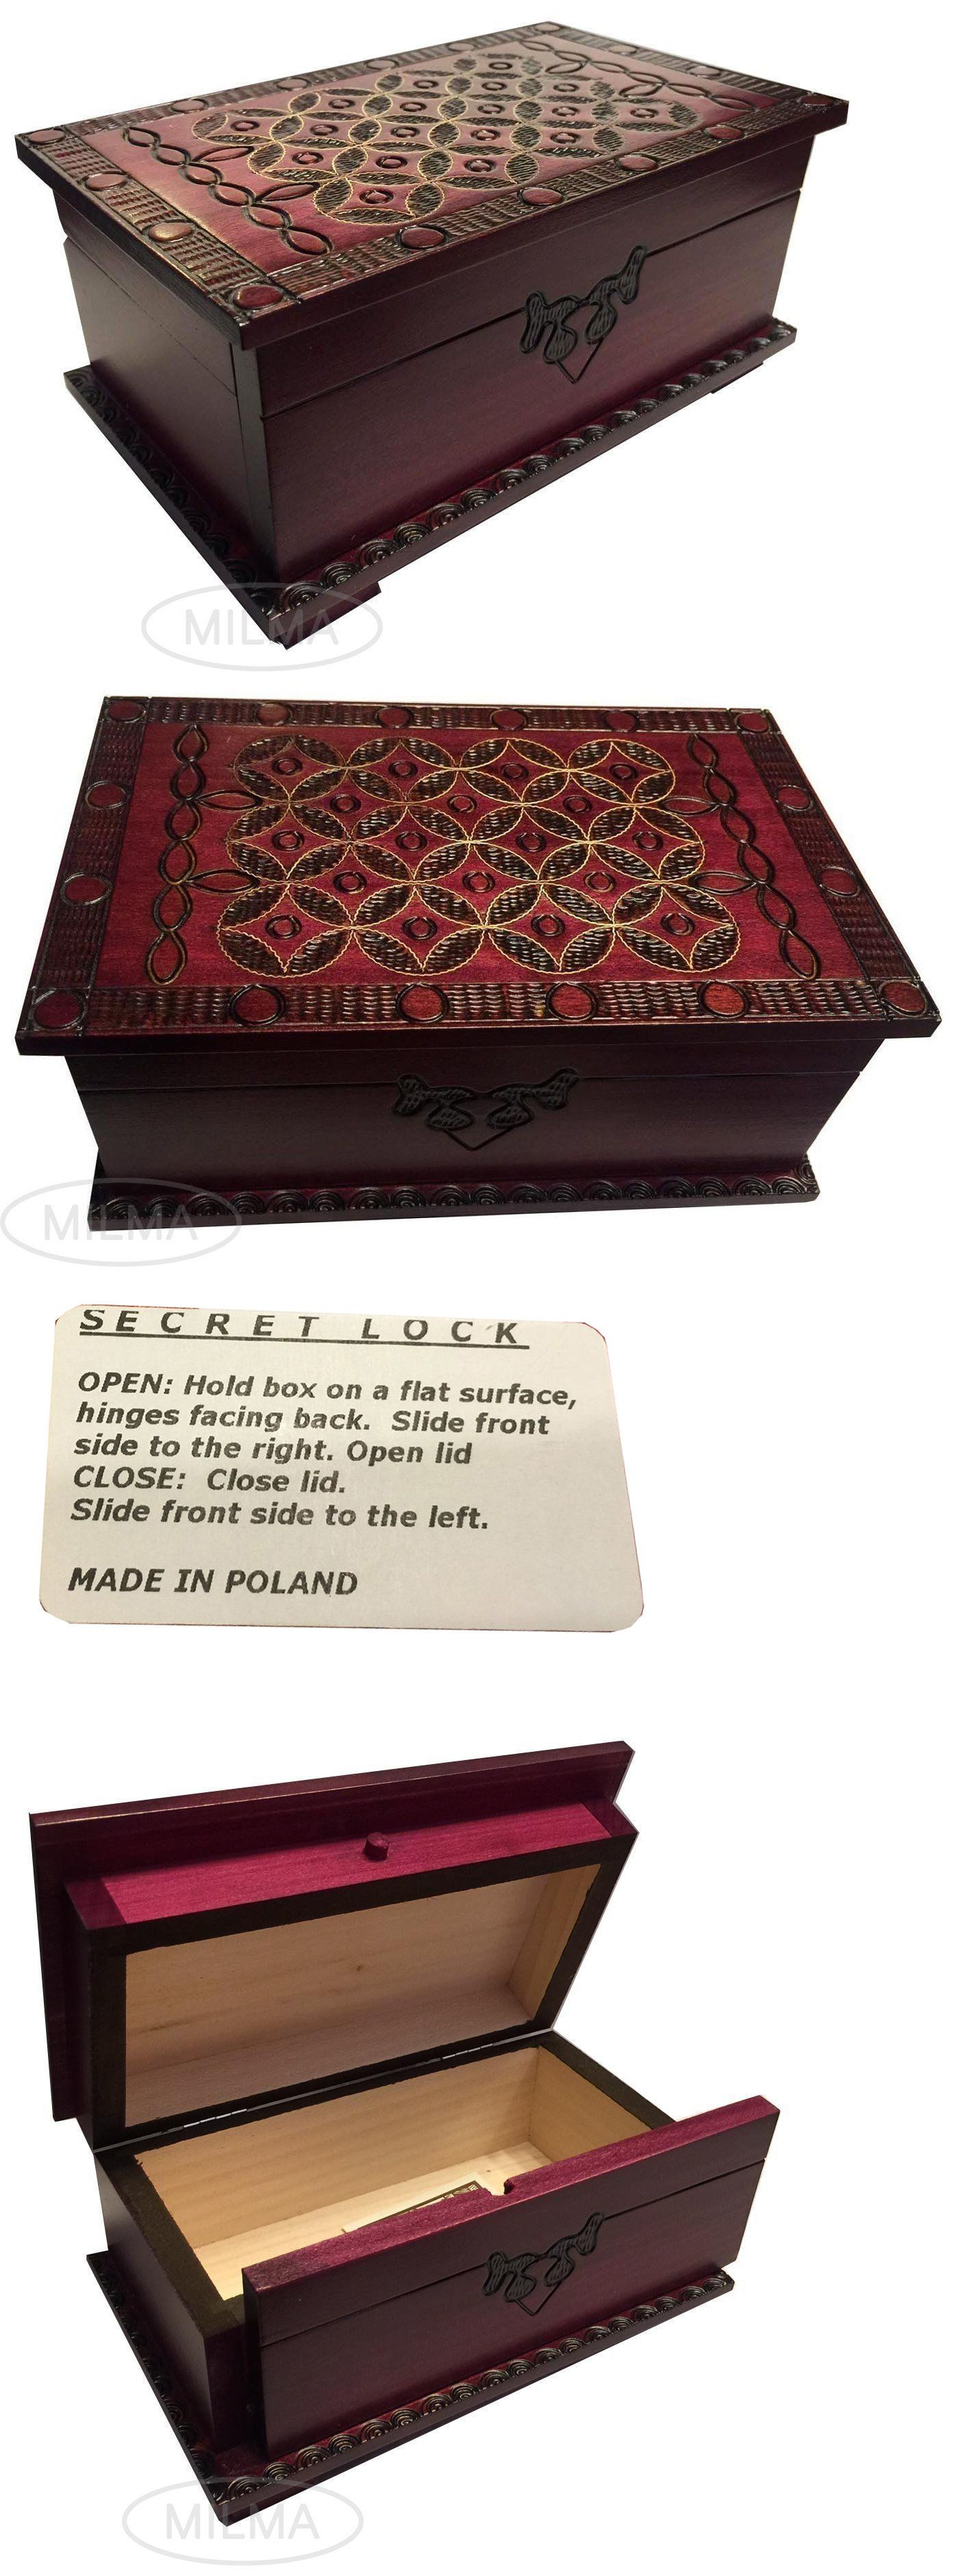 Where To Buy Decorative Boxes Jewelry Boxes 3820 Celtic Puzzle Box Decorative Wooden Chest